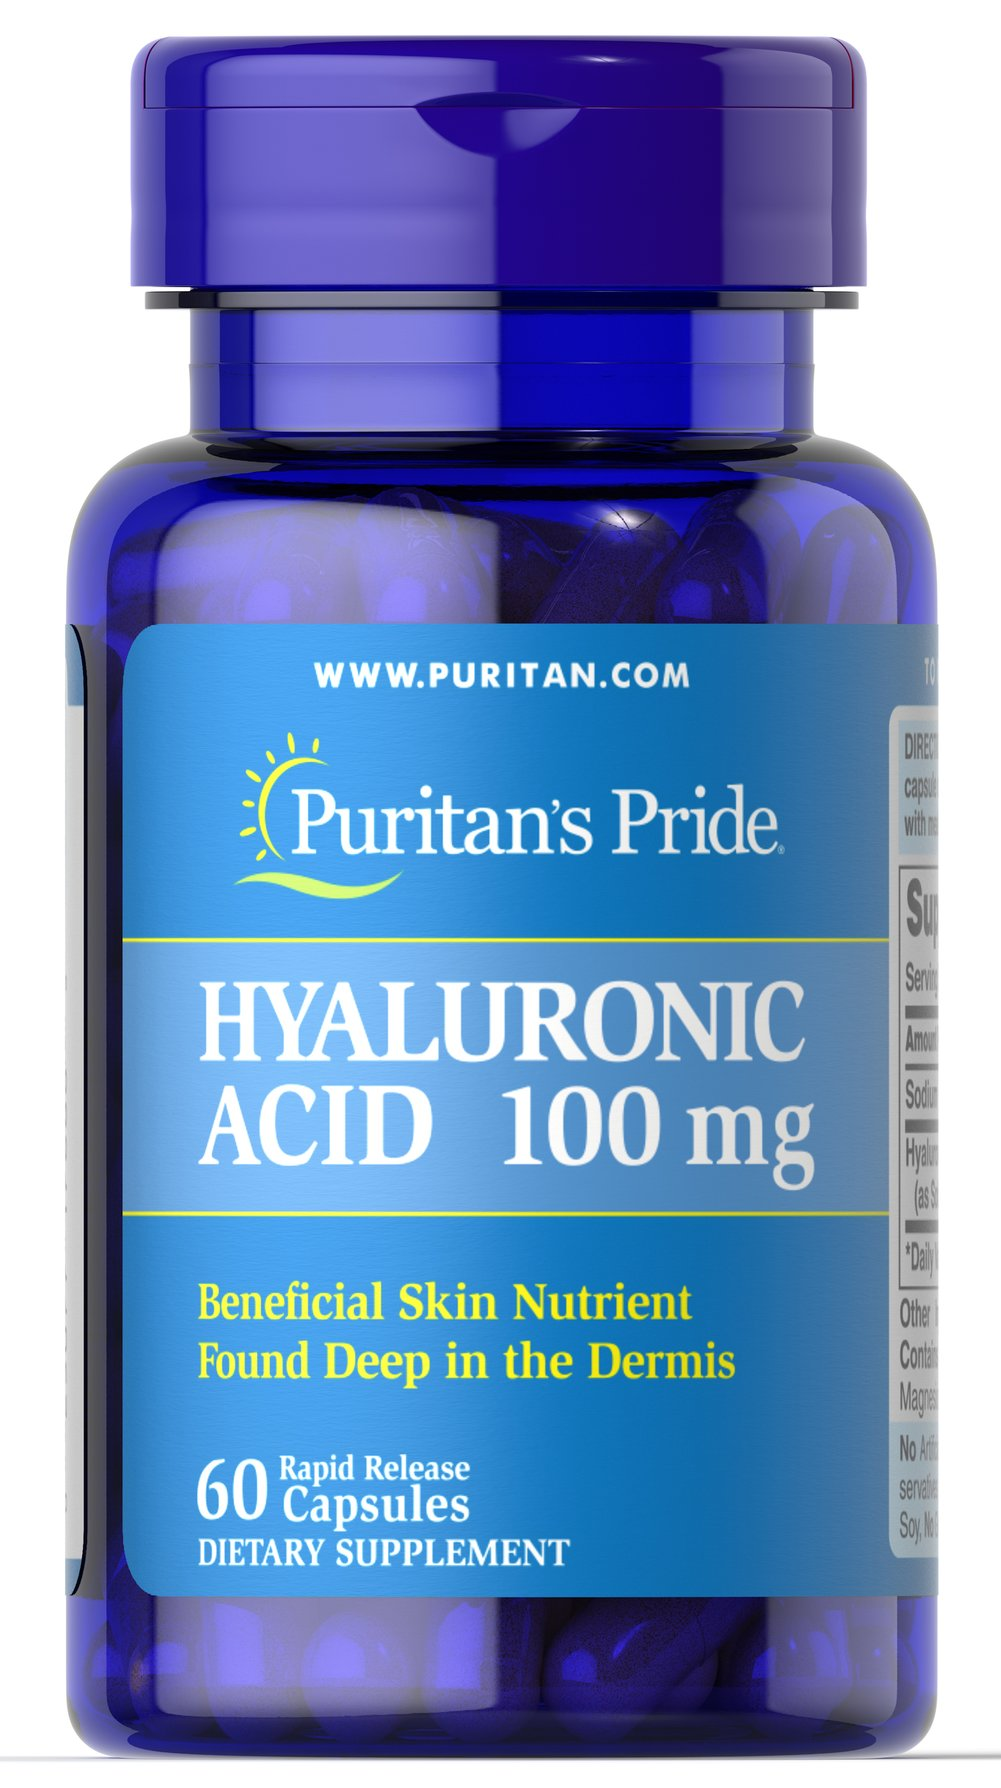 Hyaluronic Acid 100 mg <p>Helps lubricate joints**</p><p>Hyaluronic Acid is a polysaccharide found in almost all adult connective tissue, including joints, ligaments, tendons and skin.** Just one Hyaluronic Acid capsule a day can help maintain the fluid between your joints, providing the cushioning and lubrication necessary for easy movement.**</p> 60 Capsules 100 mg $34.39